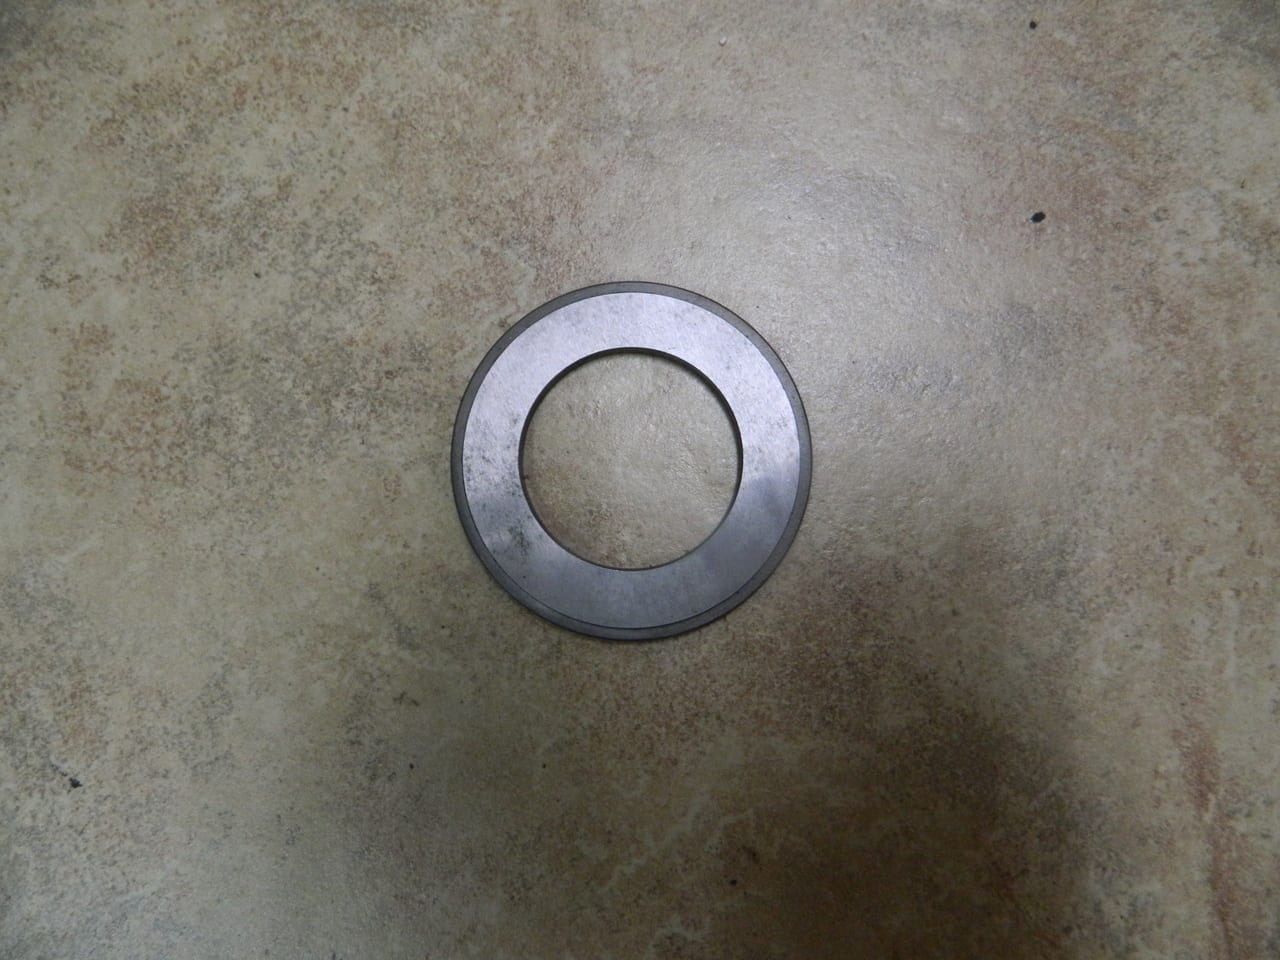 Dodge Ram NV5600 Reverse Gear Thrust Washer Mainshaft 2000-2005 6 Speed Transmission